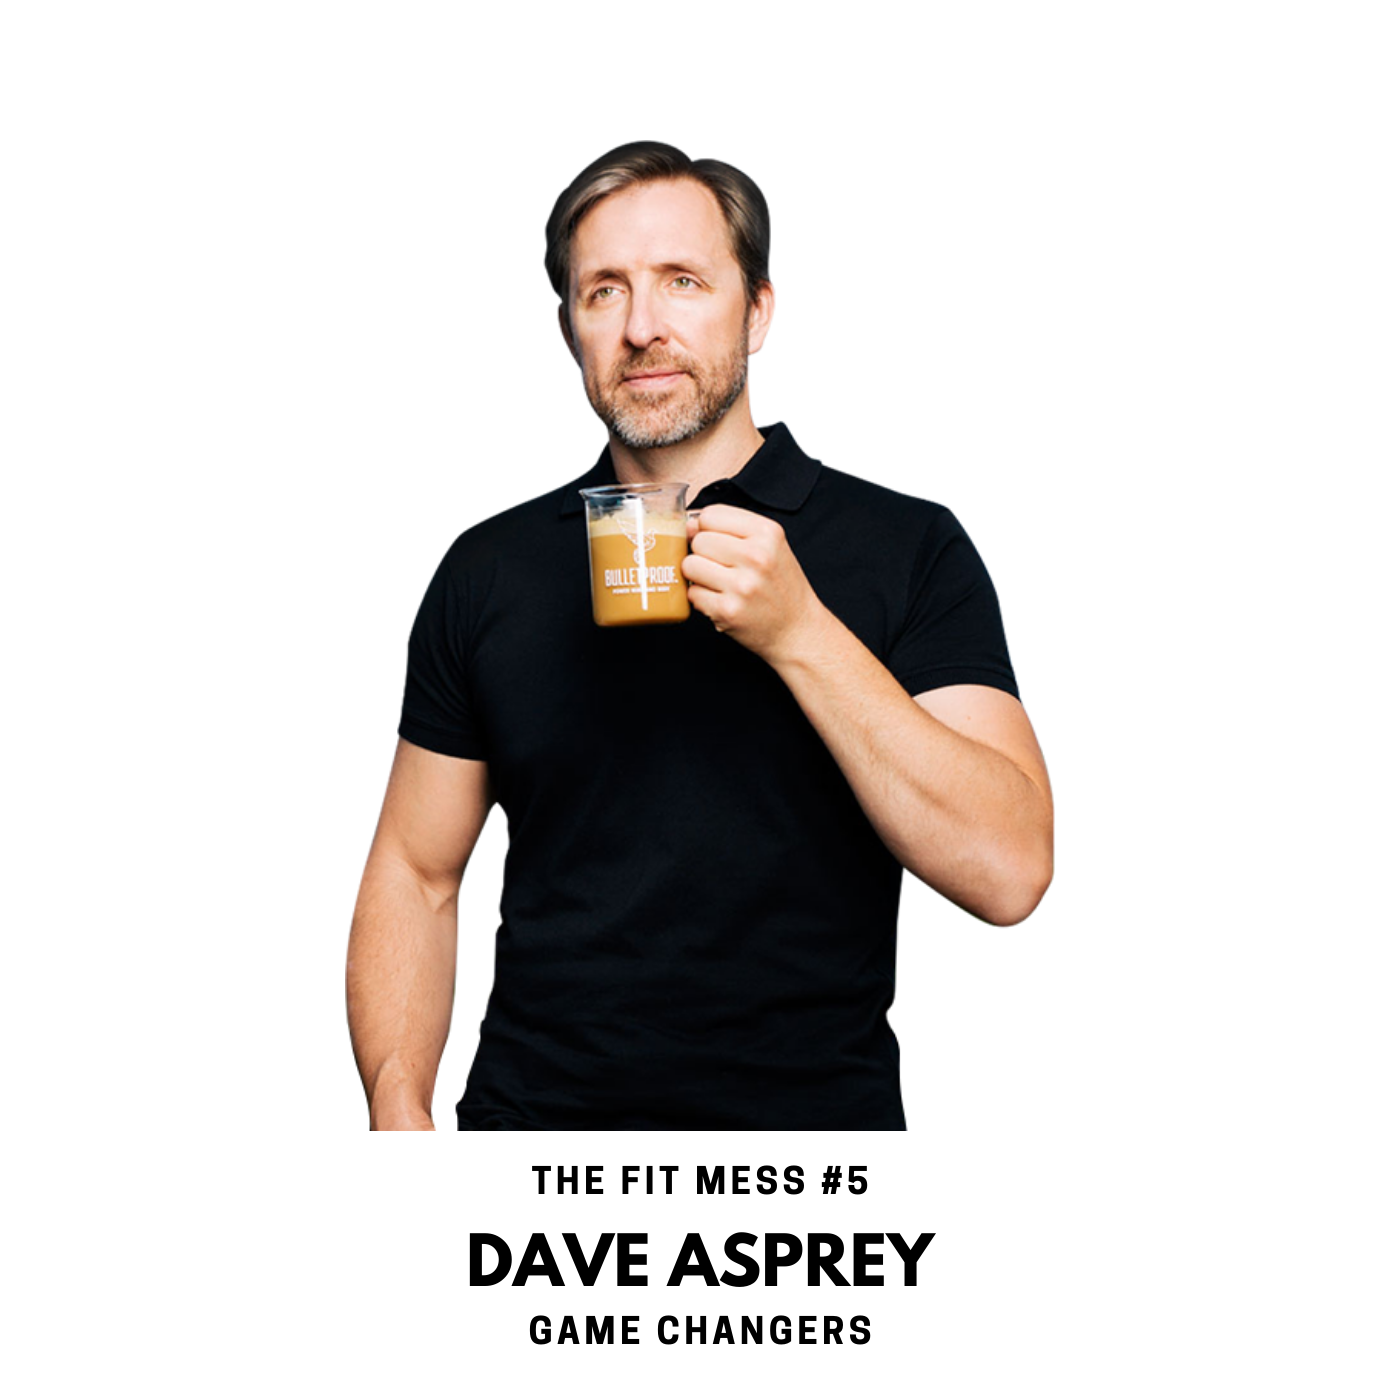 Game Changers with Dave Asprey